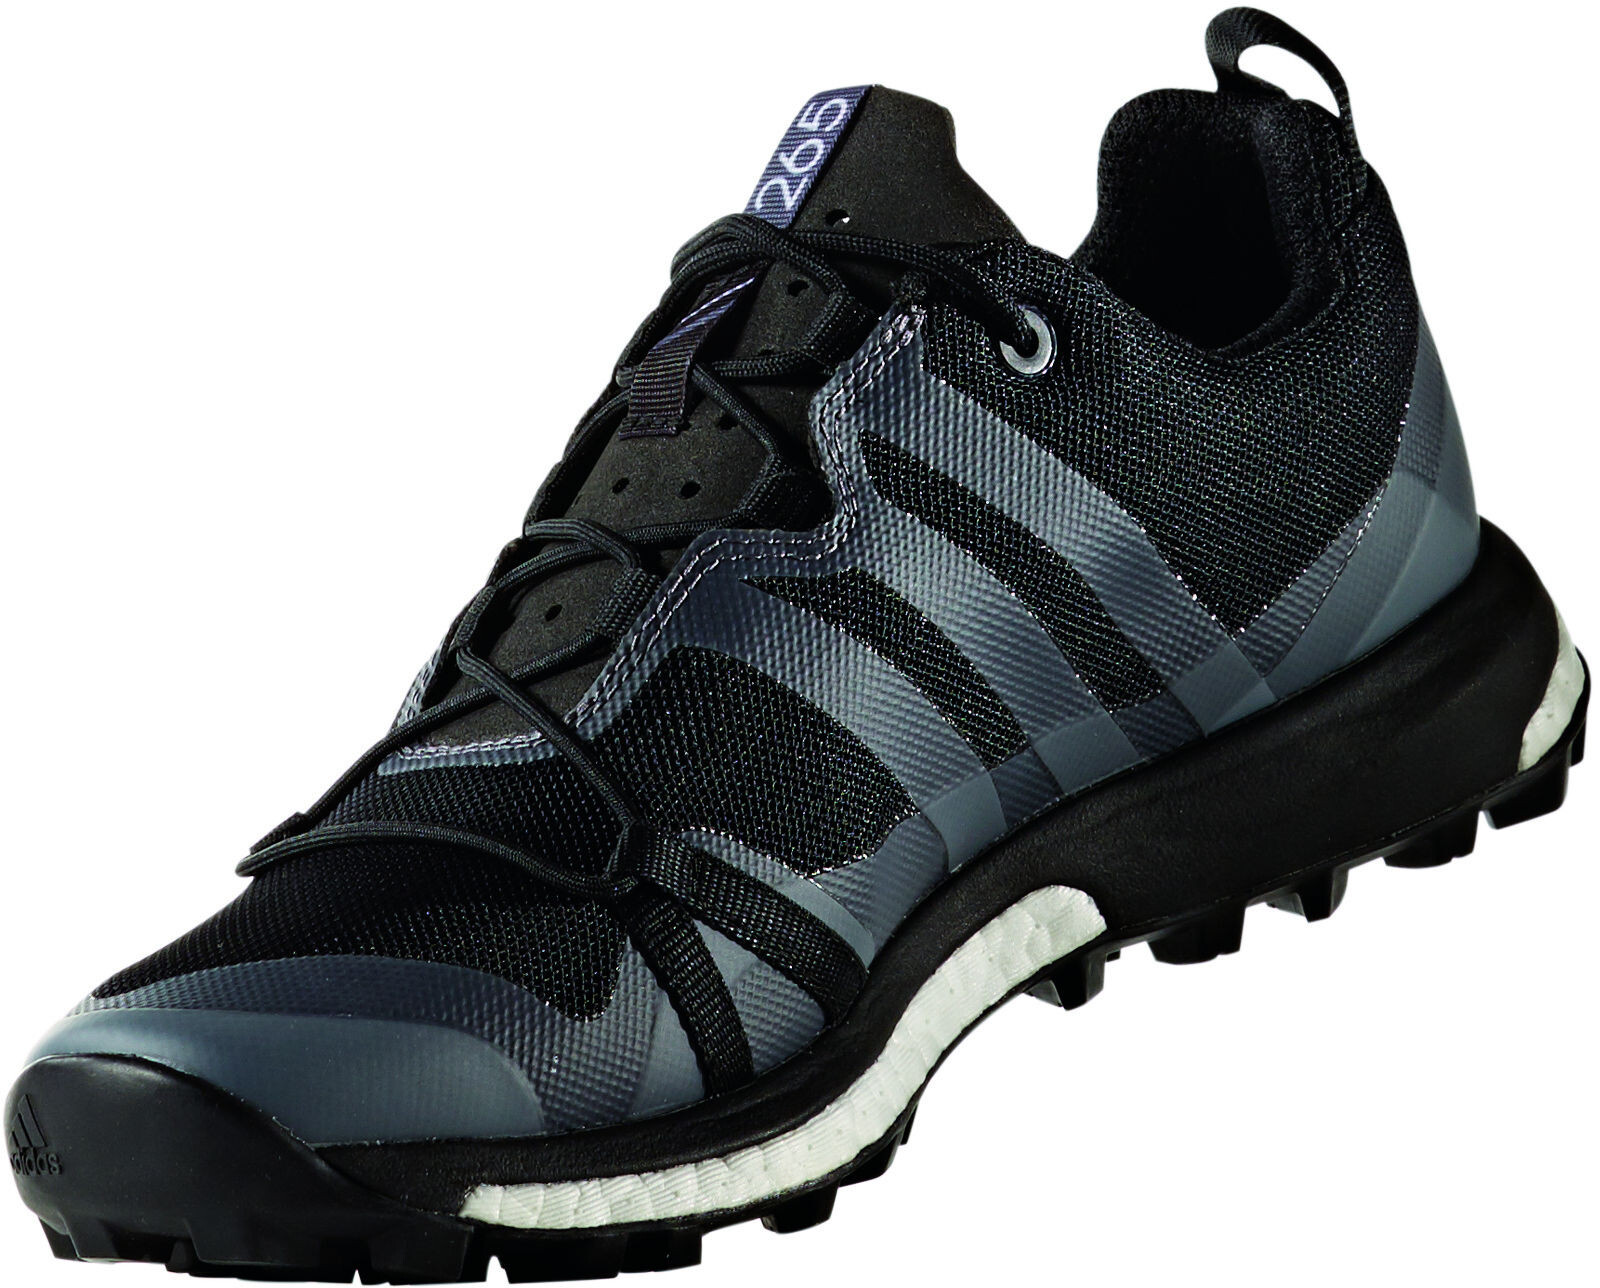 Adidas Cape Rock Ind Outdoor Shoes Buy Trabrncblack 5dfa0e39c